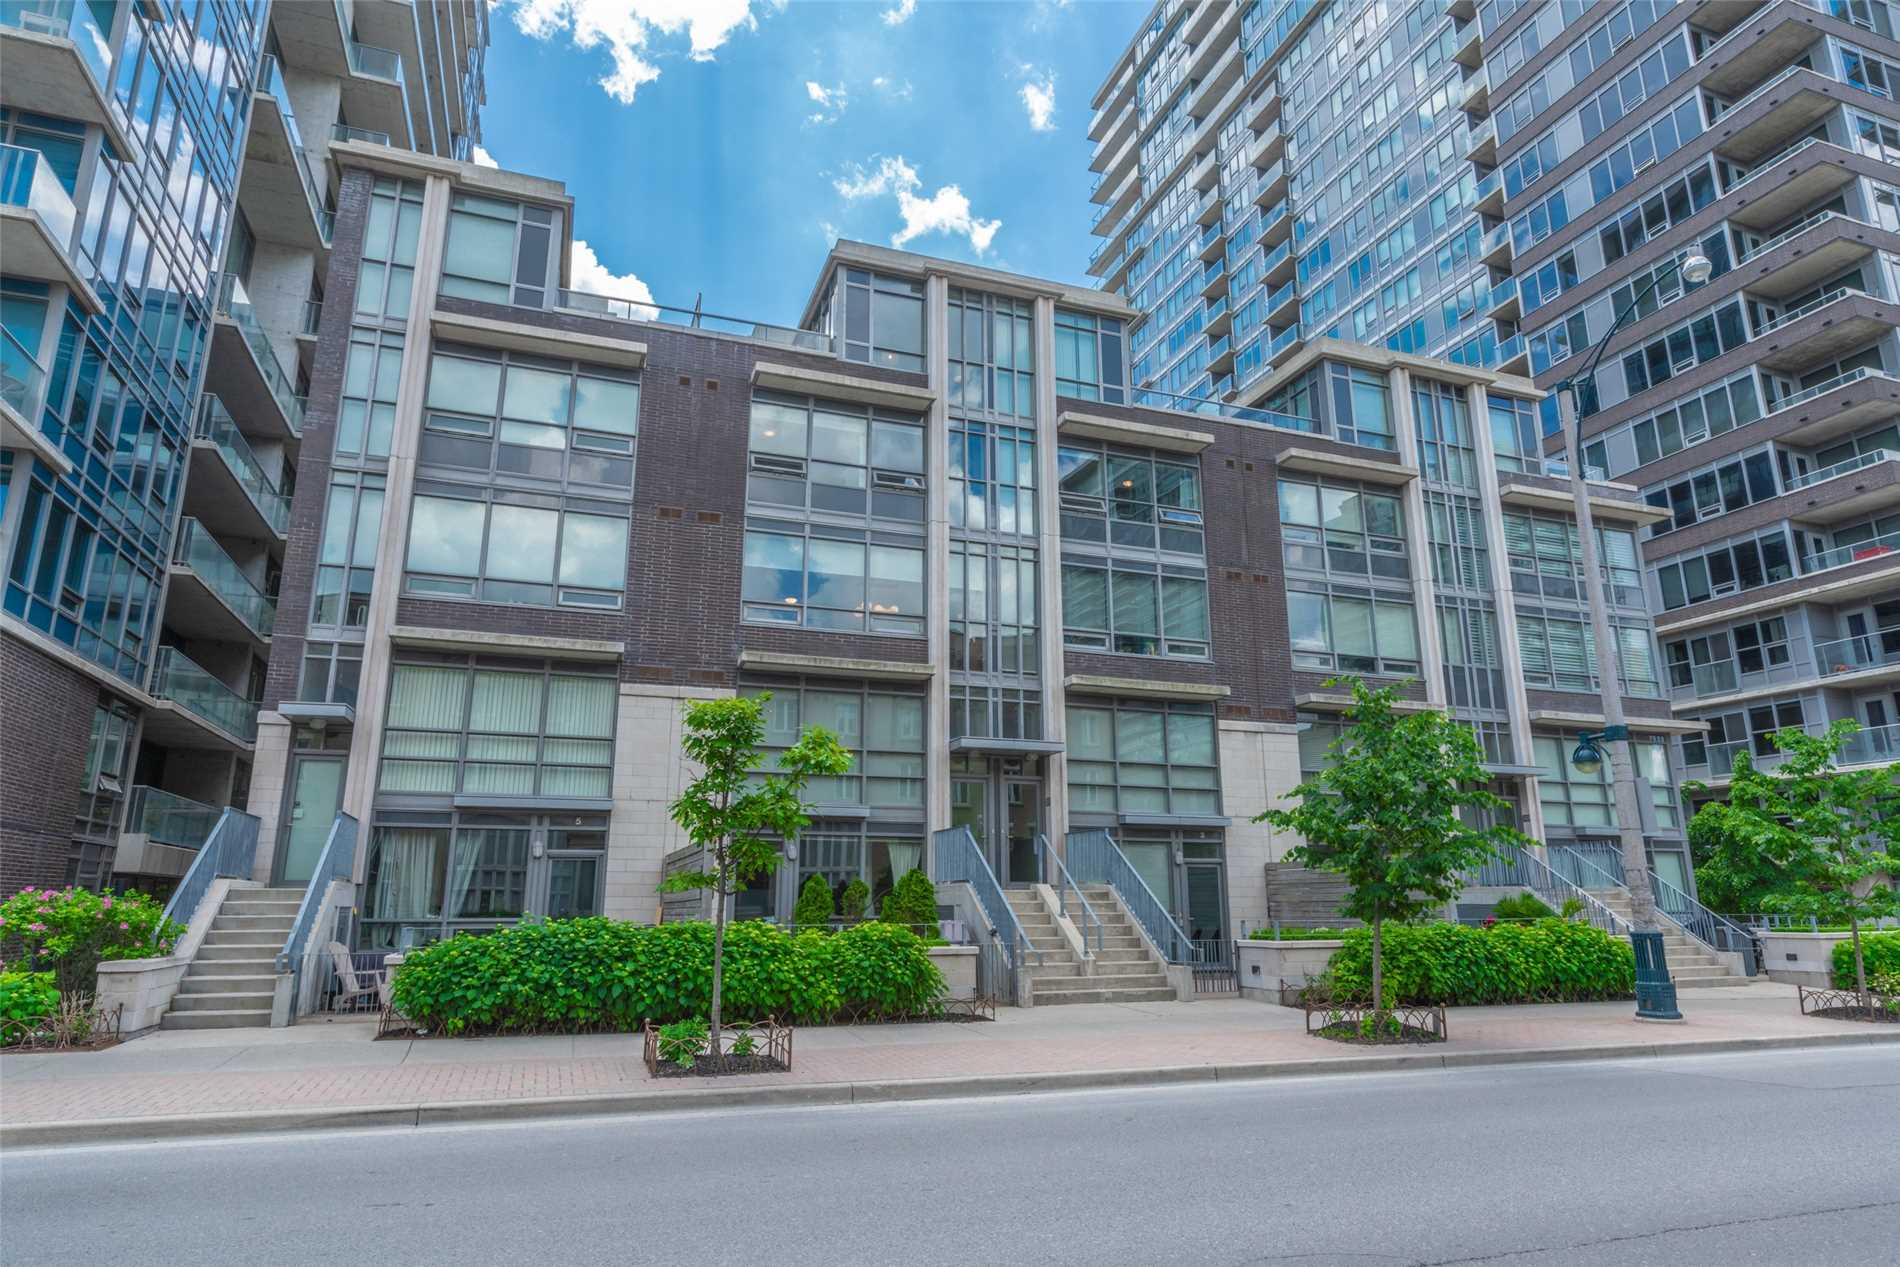 Top 10 Reasons To Love This Liberty Village Townhome!